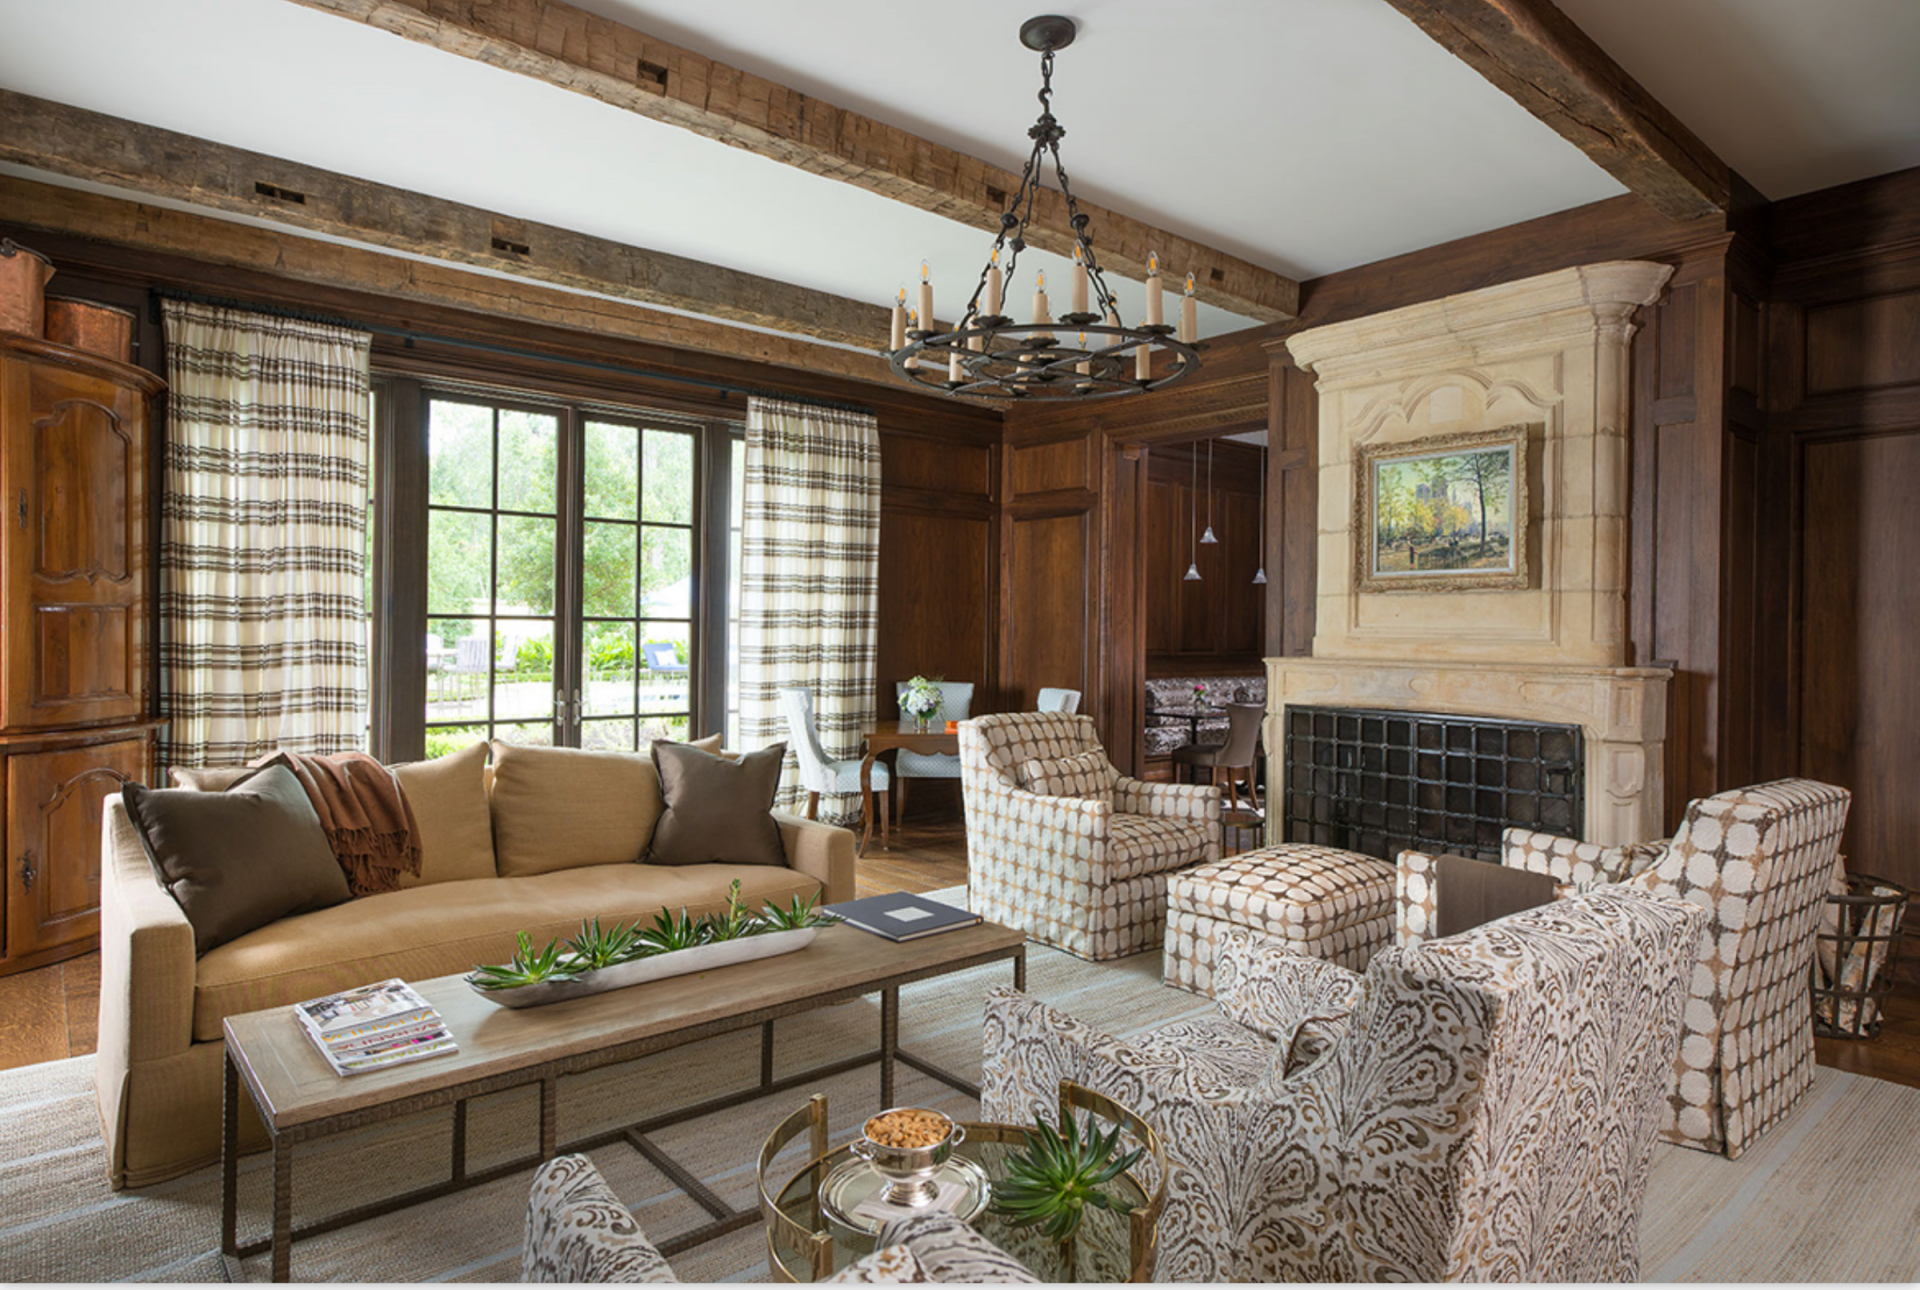 35 Best Rustic Living Room Ideas – Rustic Decor For Living Rooms in Hunting Decor For Living Room